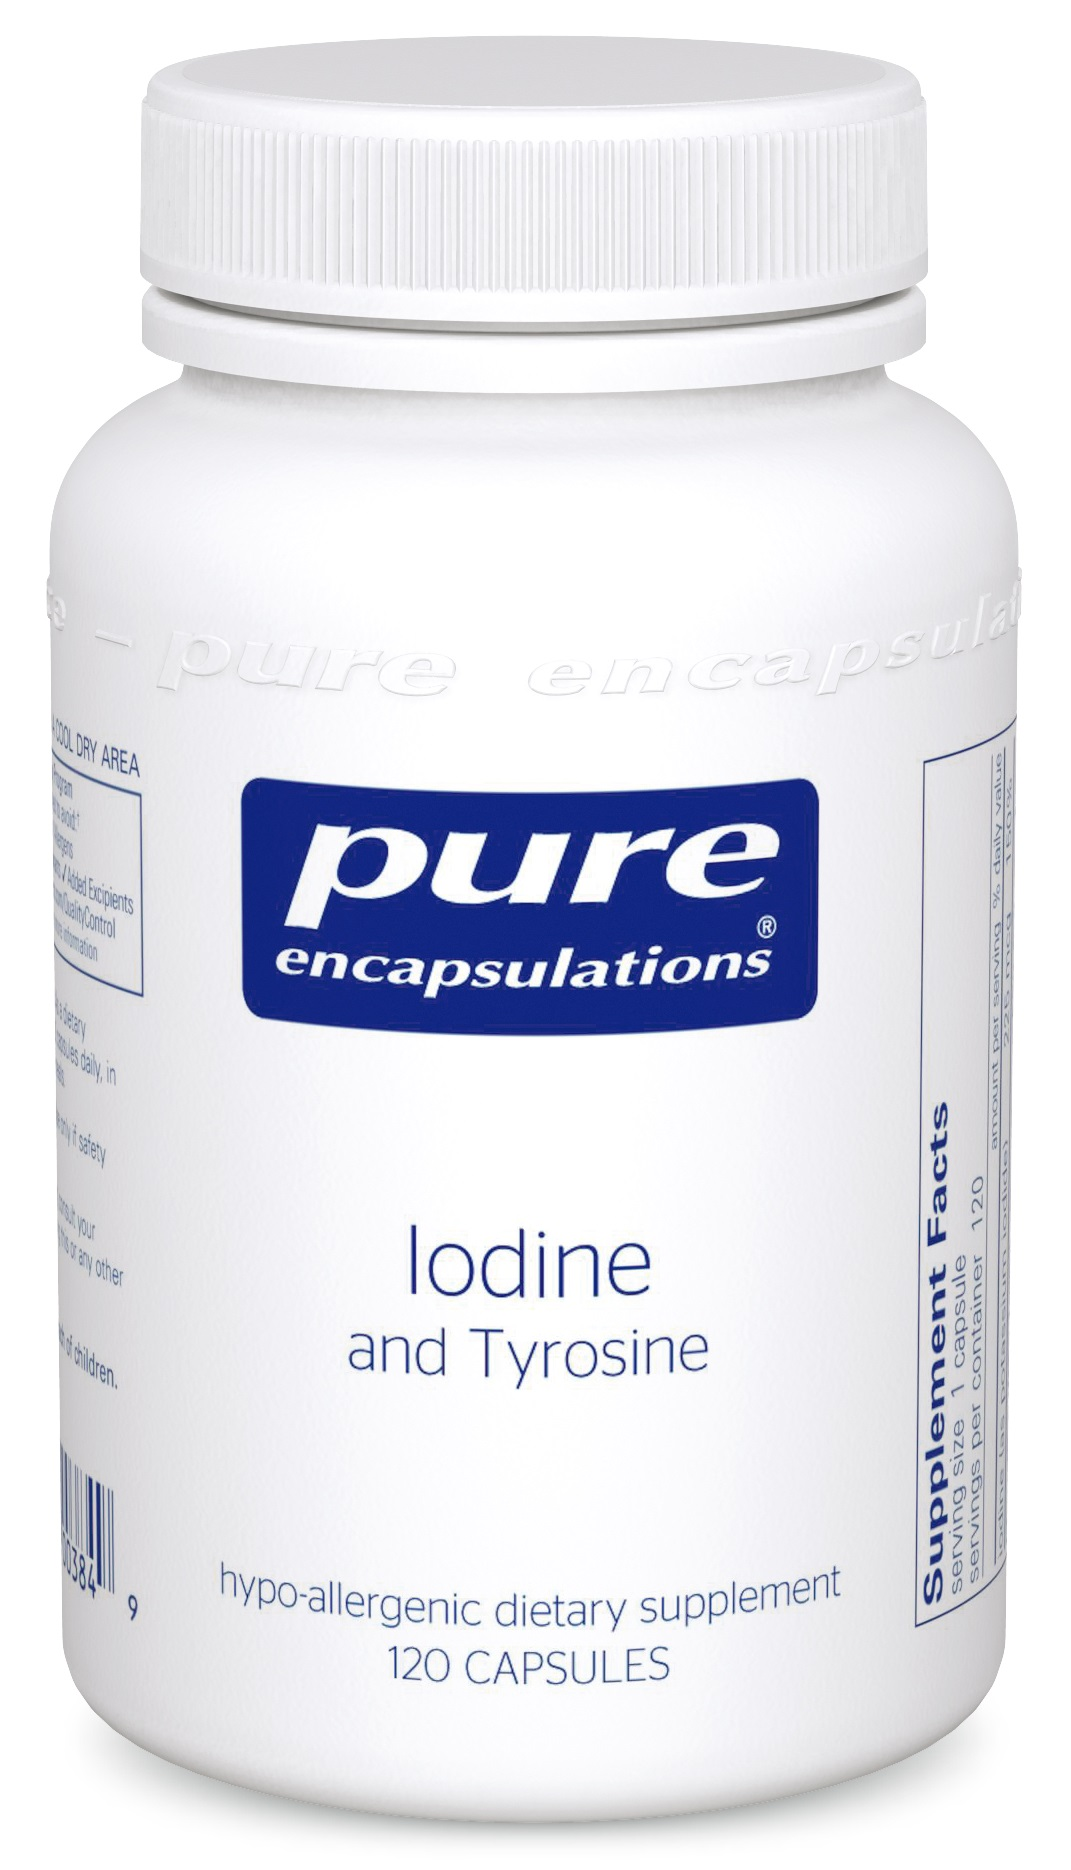 Pure Encapsulations Iodine and Tyrosine